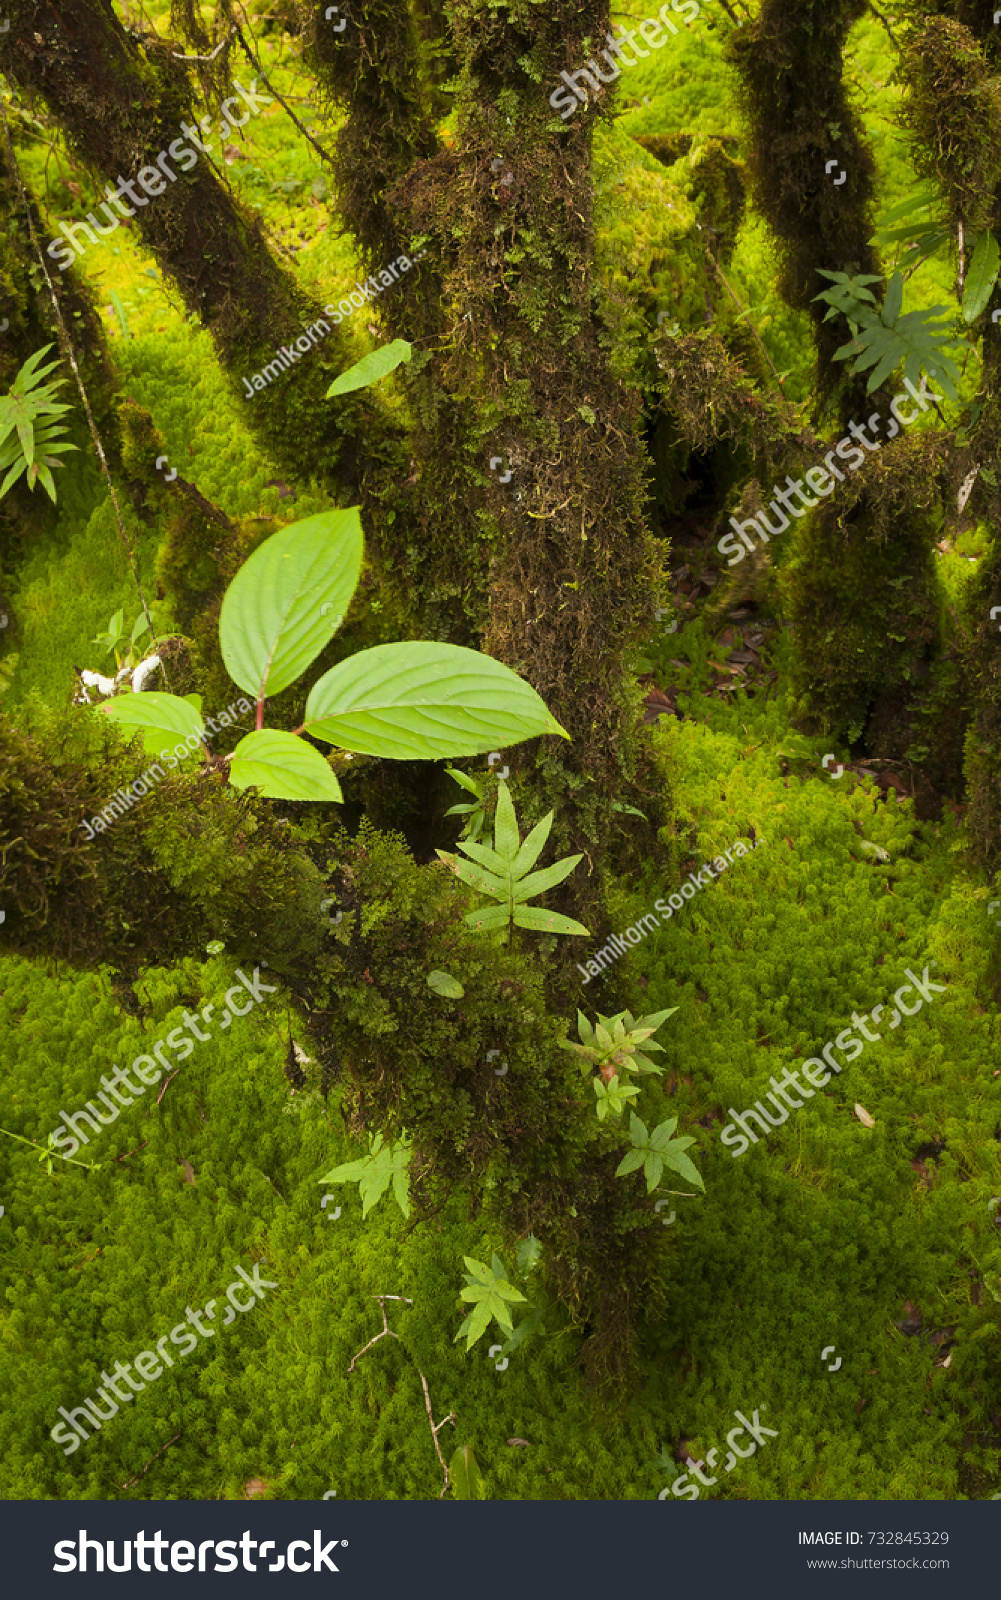 Tropical Evergreen Forest Hill Evergreen Forest Stock Photo Edit Now 732845329 The common animals found in these forests are elephants, monkey, lemur and deer. shutterstock